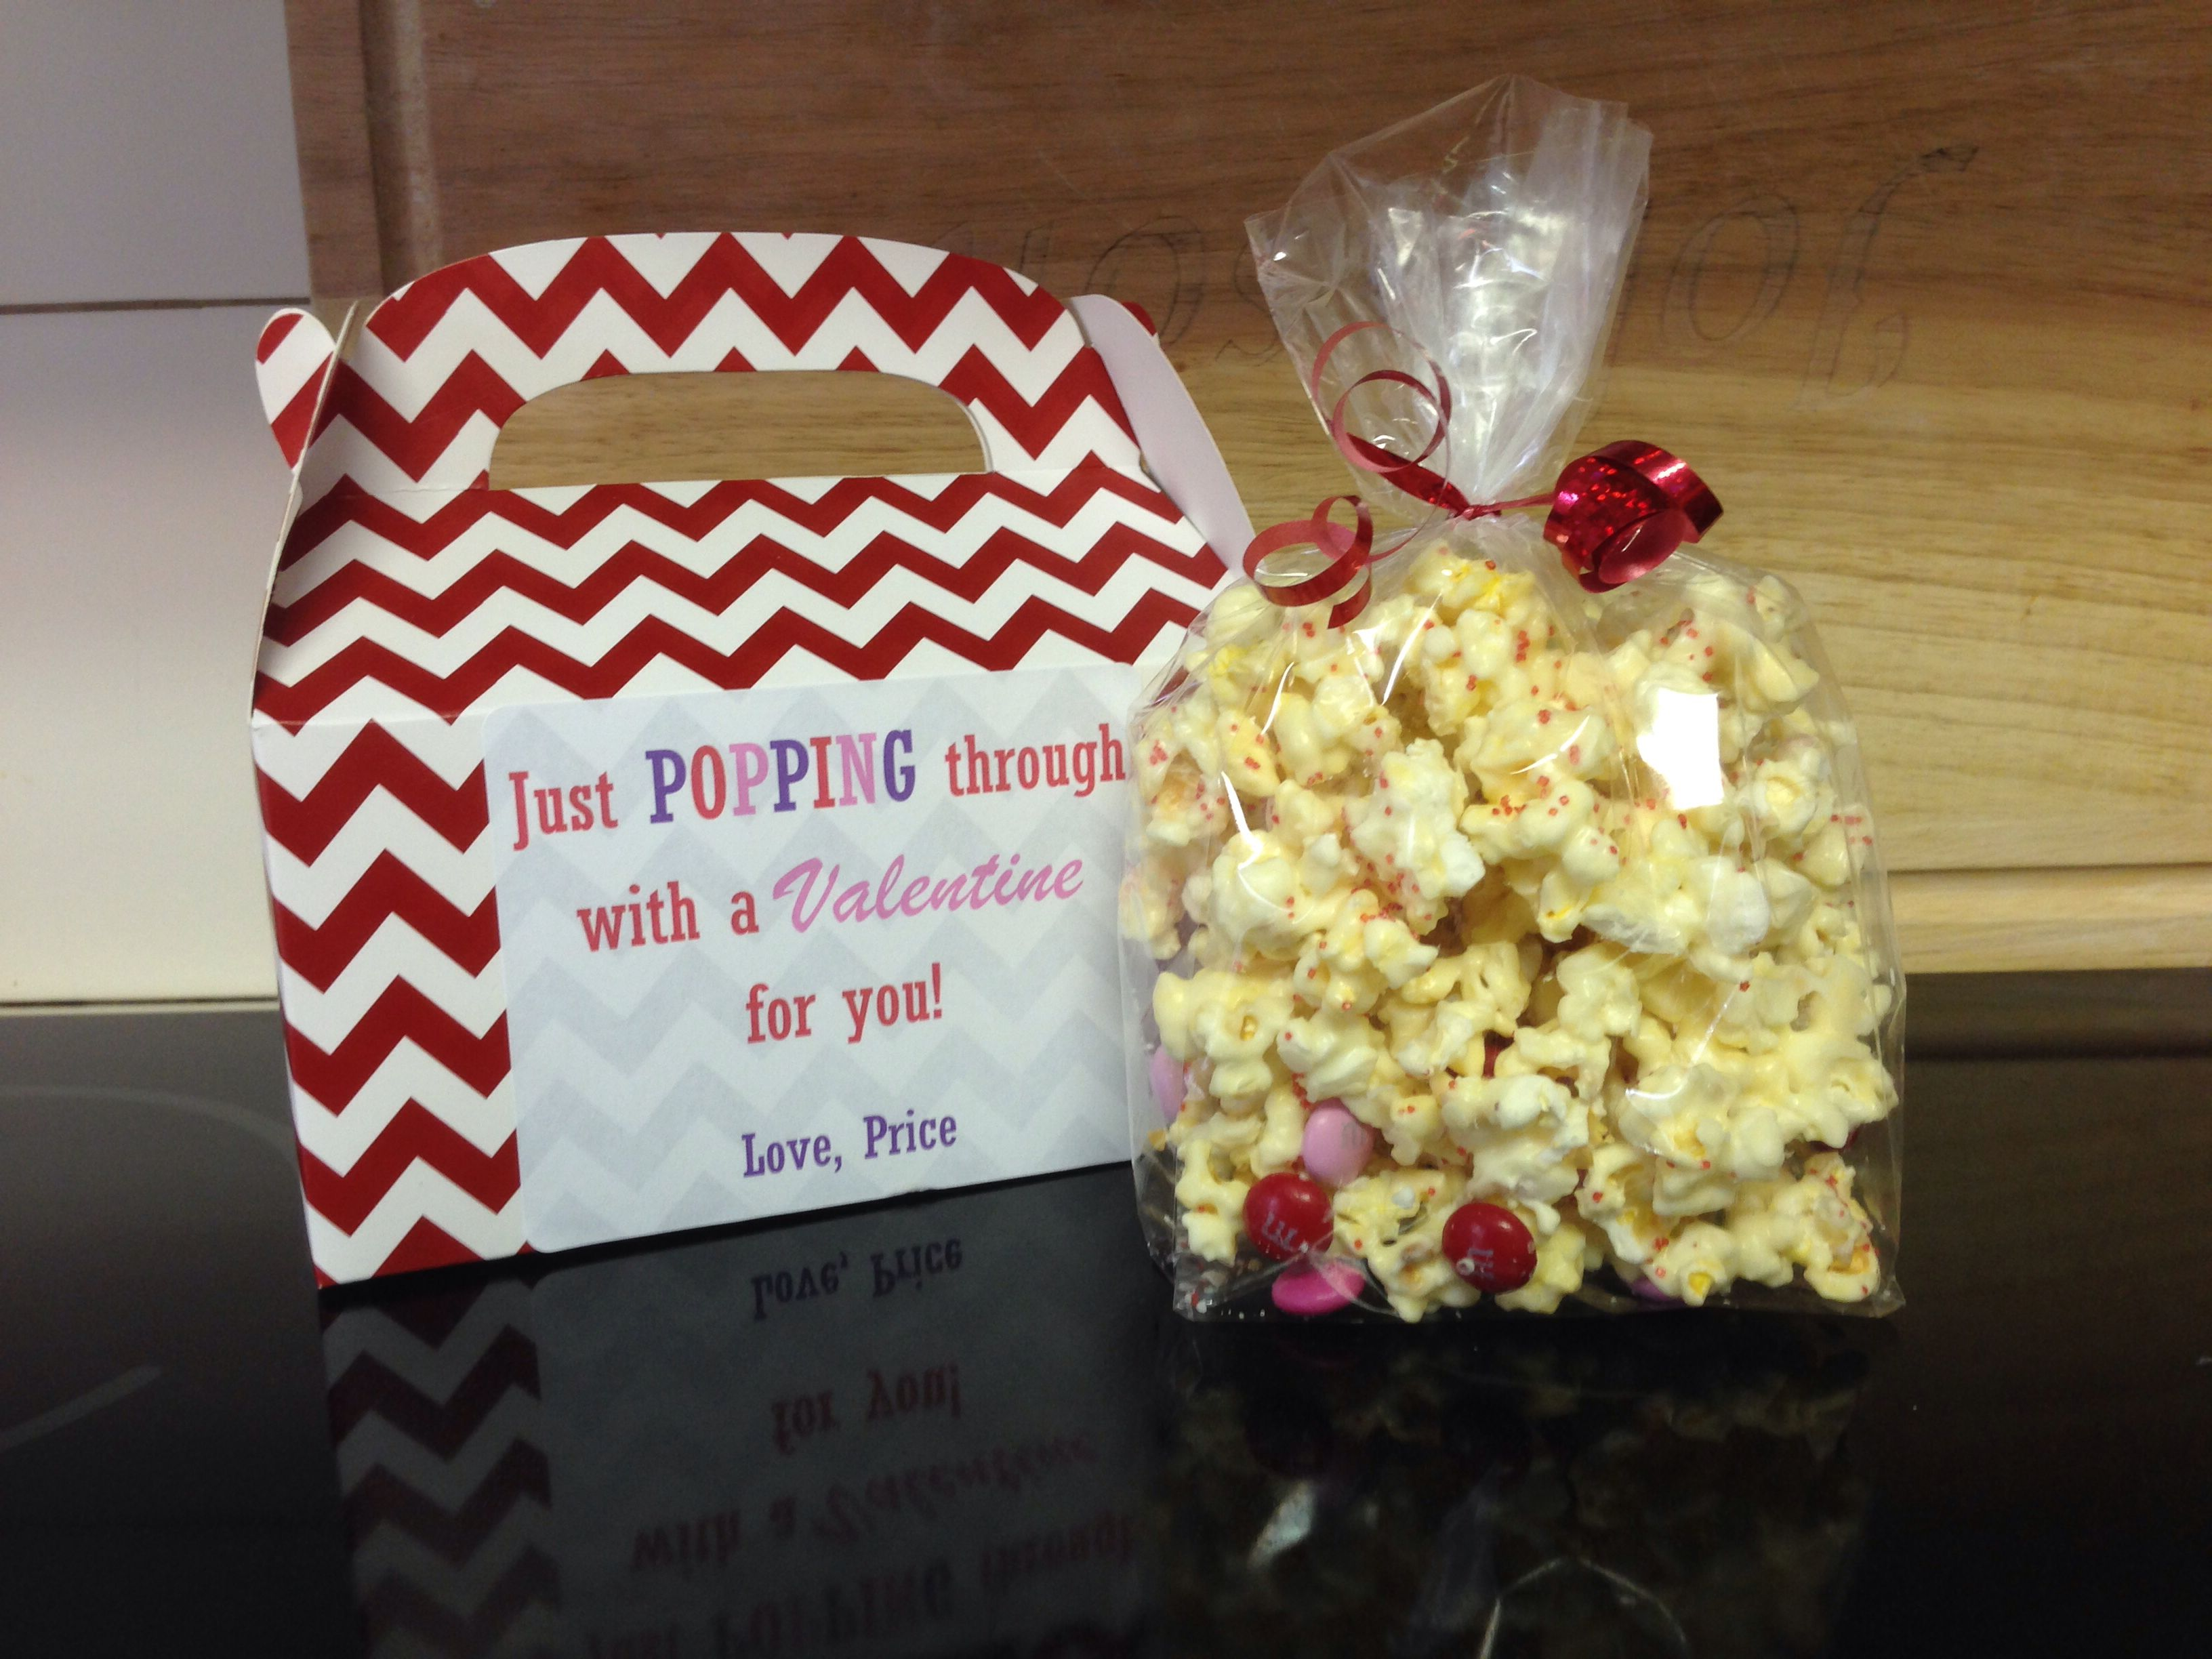 """Valentines Day treats for P's teachers - white chocolate/candy/sprinkle covered popcorn with sign """"Just POPPING through with a Valentine for you!"""""""